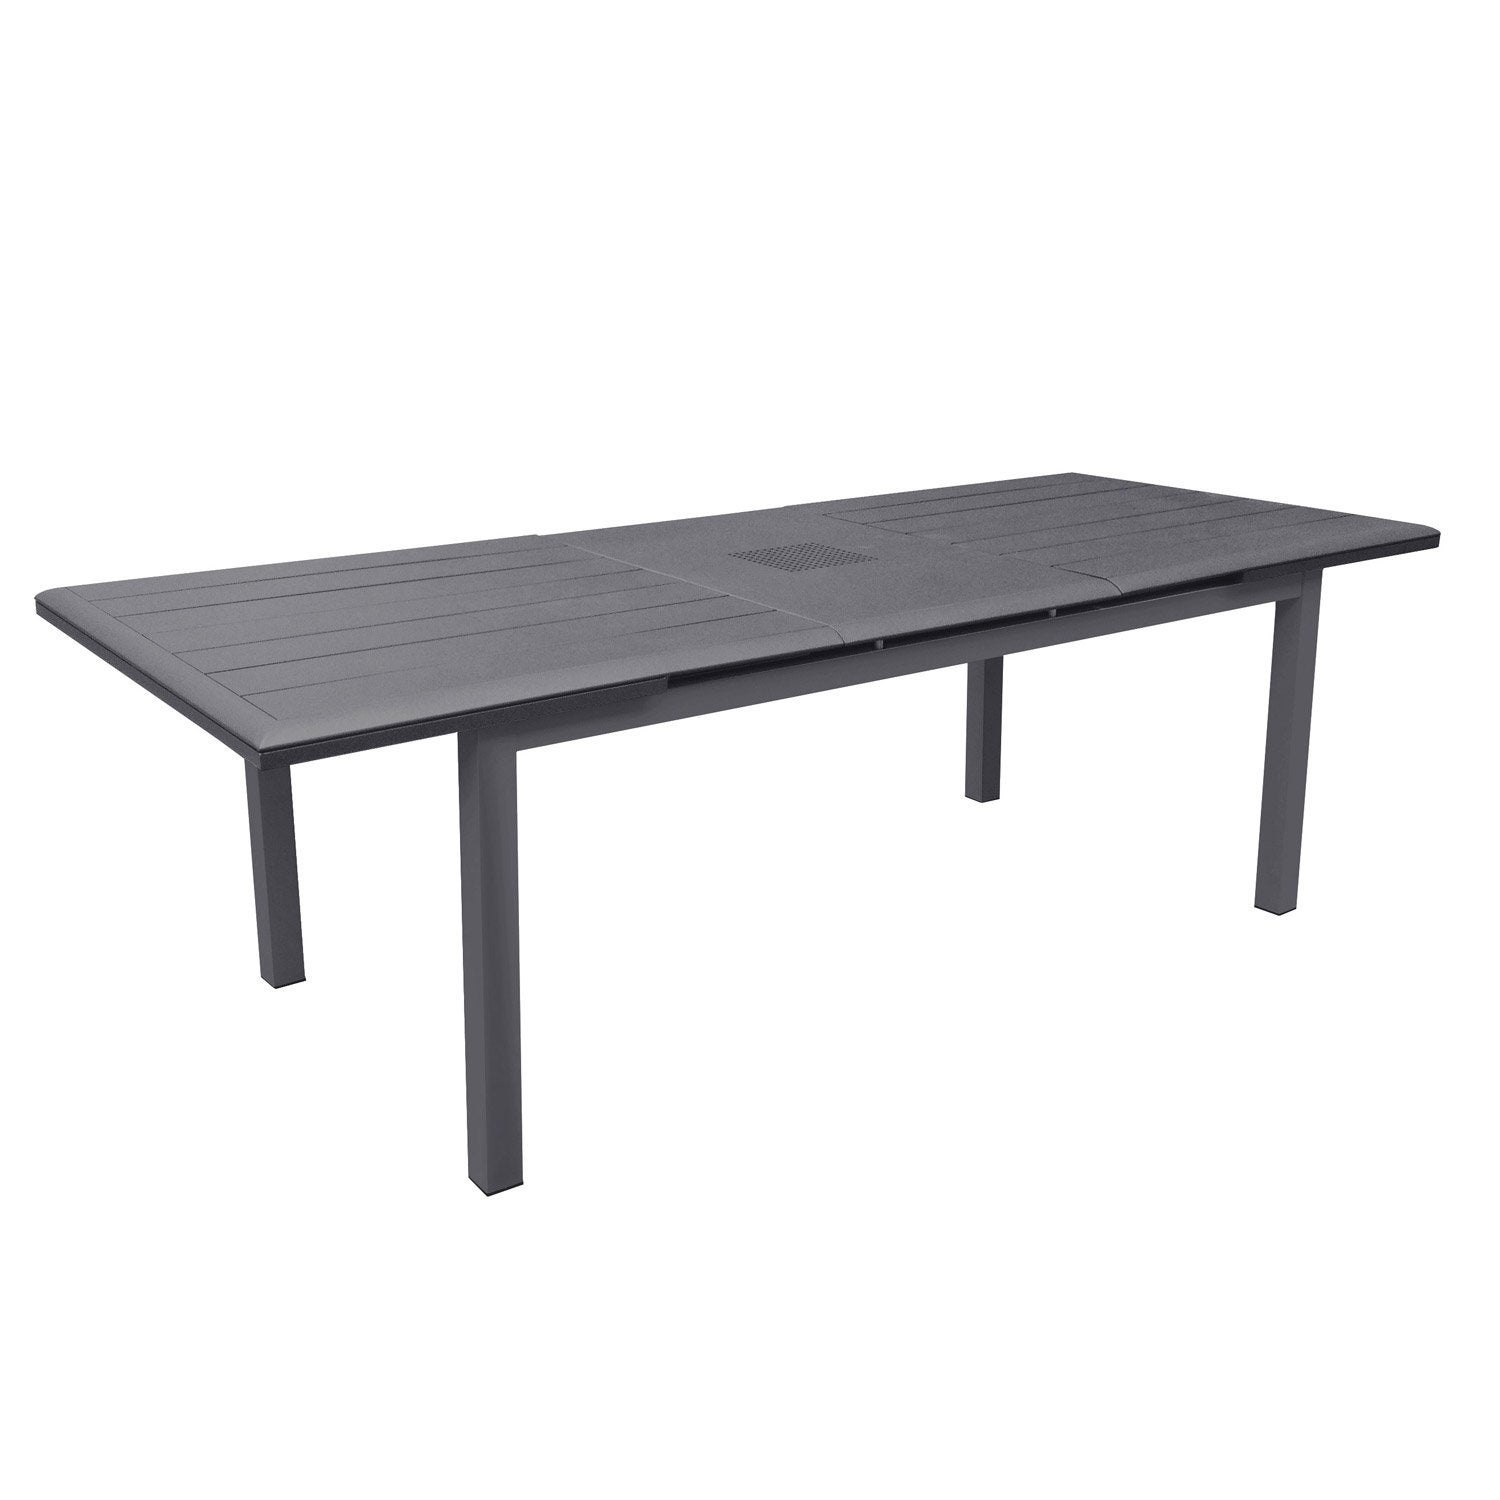 Table de jardin louisiane rectangulaire gris 6 8 personnes for Table jardin 8 personnes